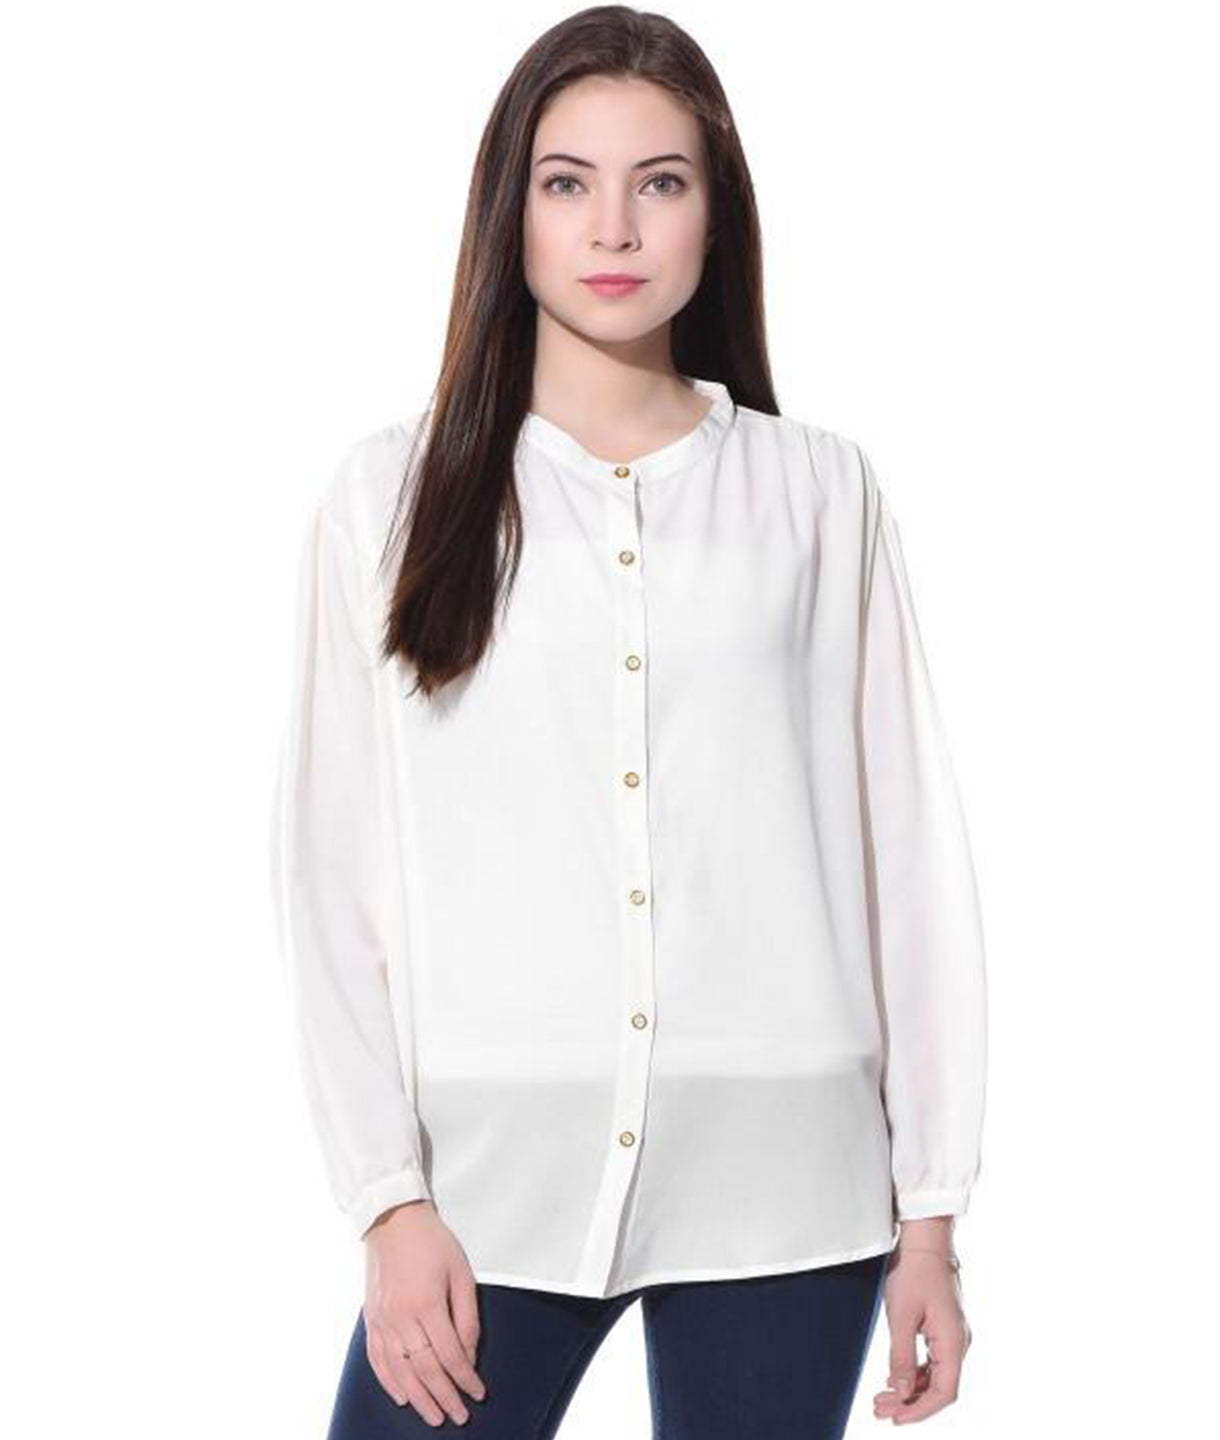 White Solid Full Sleeves Button Down Crepe Shirt. BUY 1 GET 1